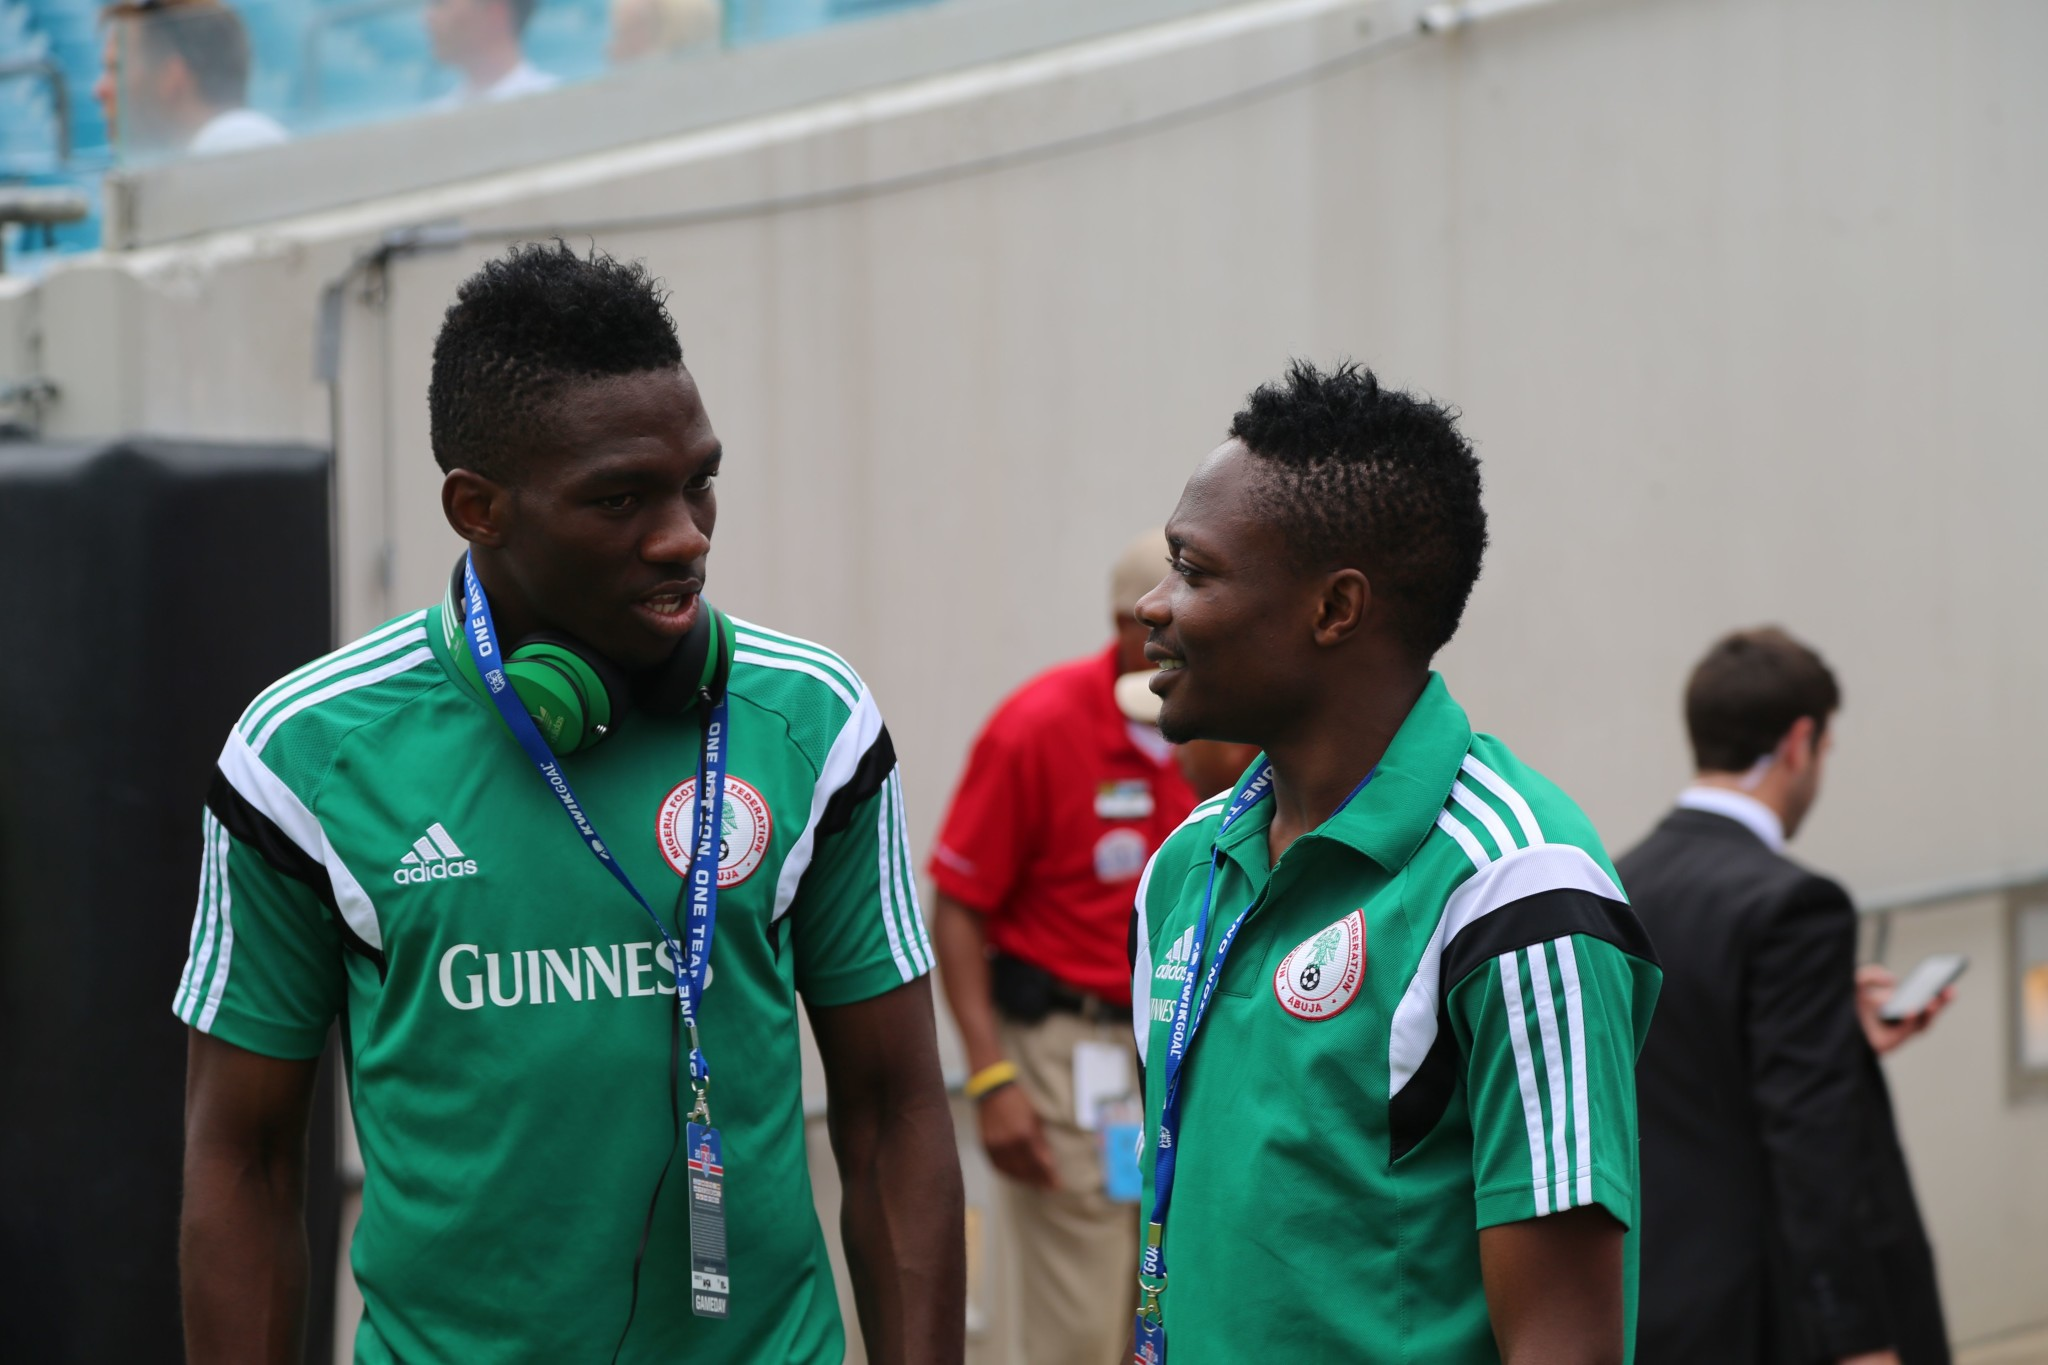 Captains Usually Live Up To Expectation, Nigerian Strikers Are Just As Good, Enyimba To Progress.